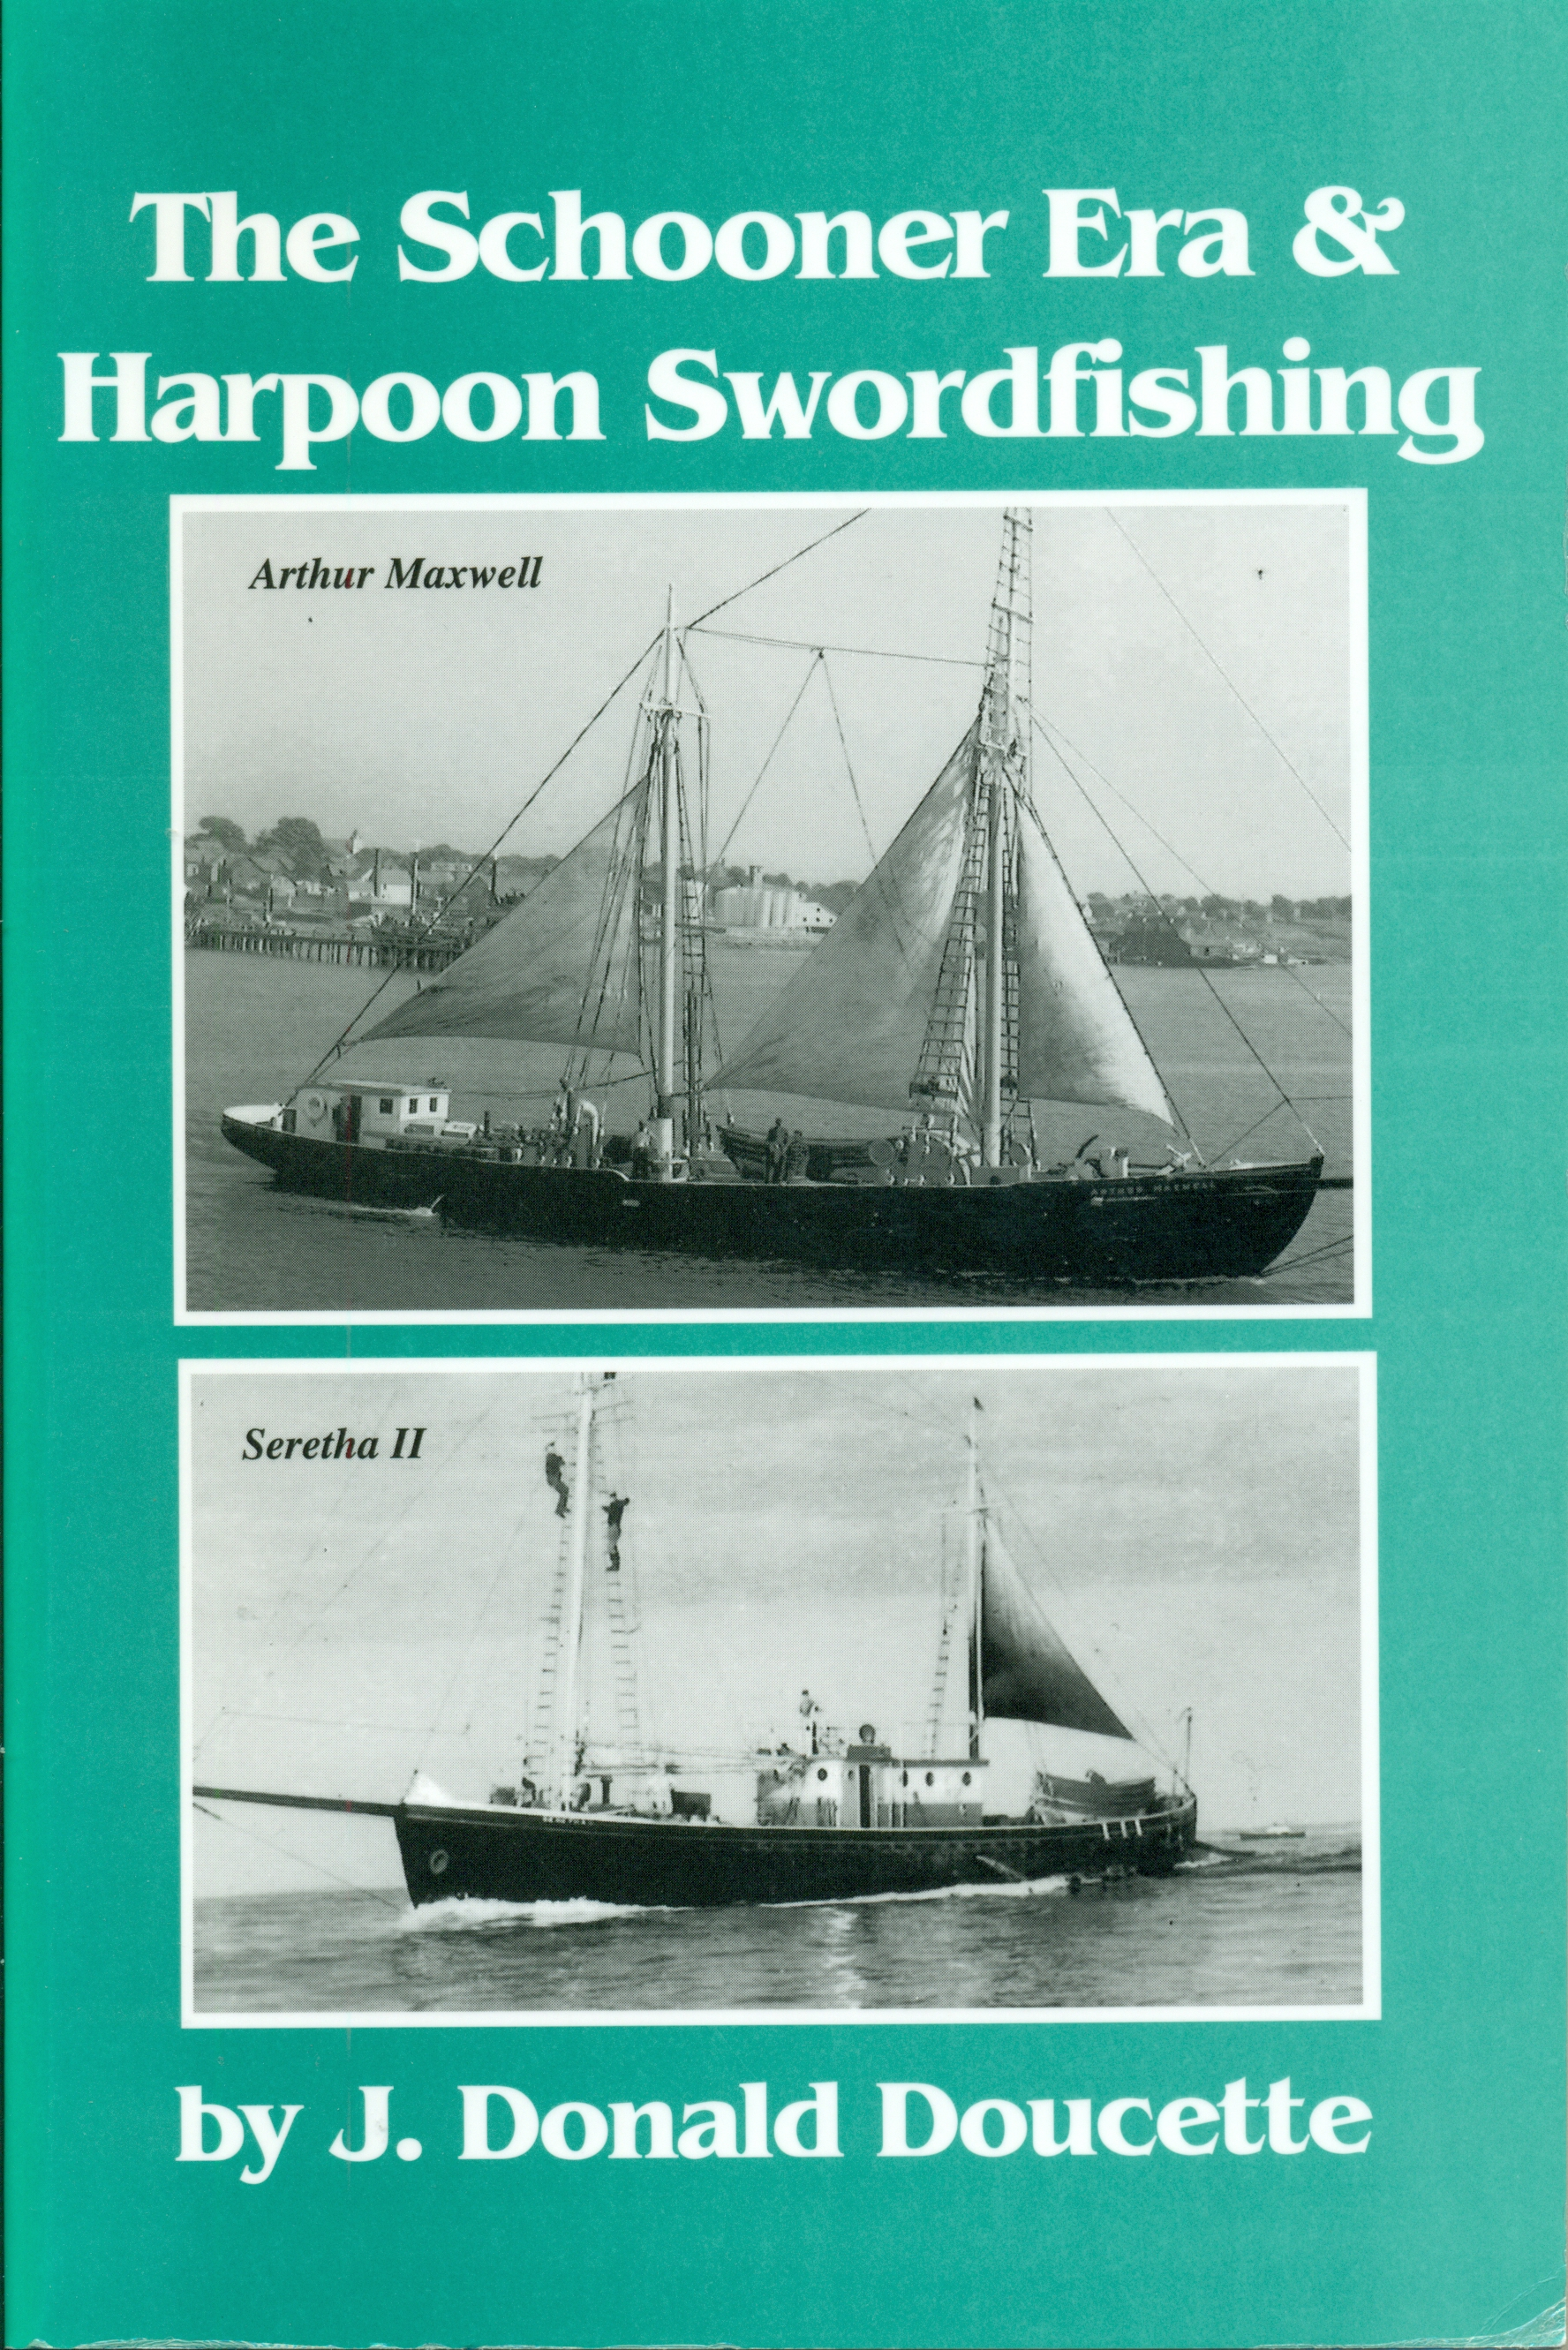 The Schooner Era and Harpoon Swordfishing